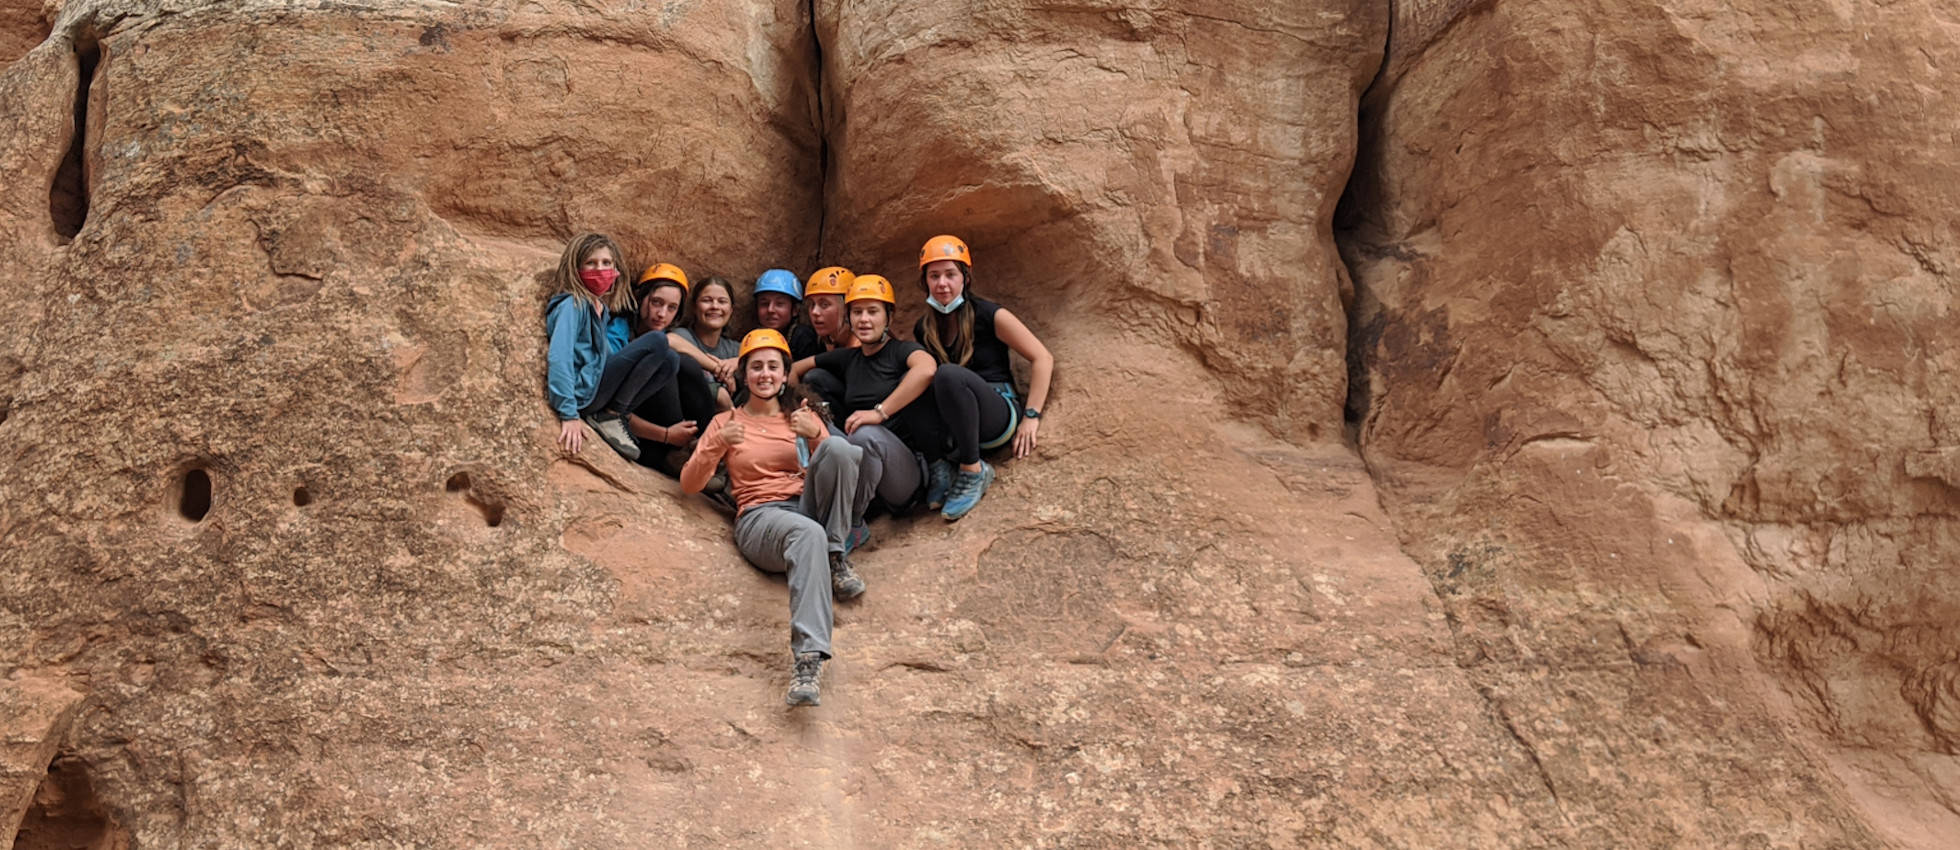 Summer Program - Animal Rights and Rescue | ARCC Programs | Colorado & Utah: Canyons & Conservation